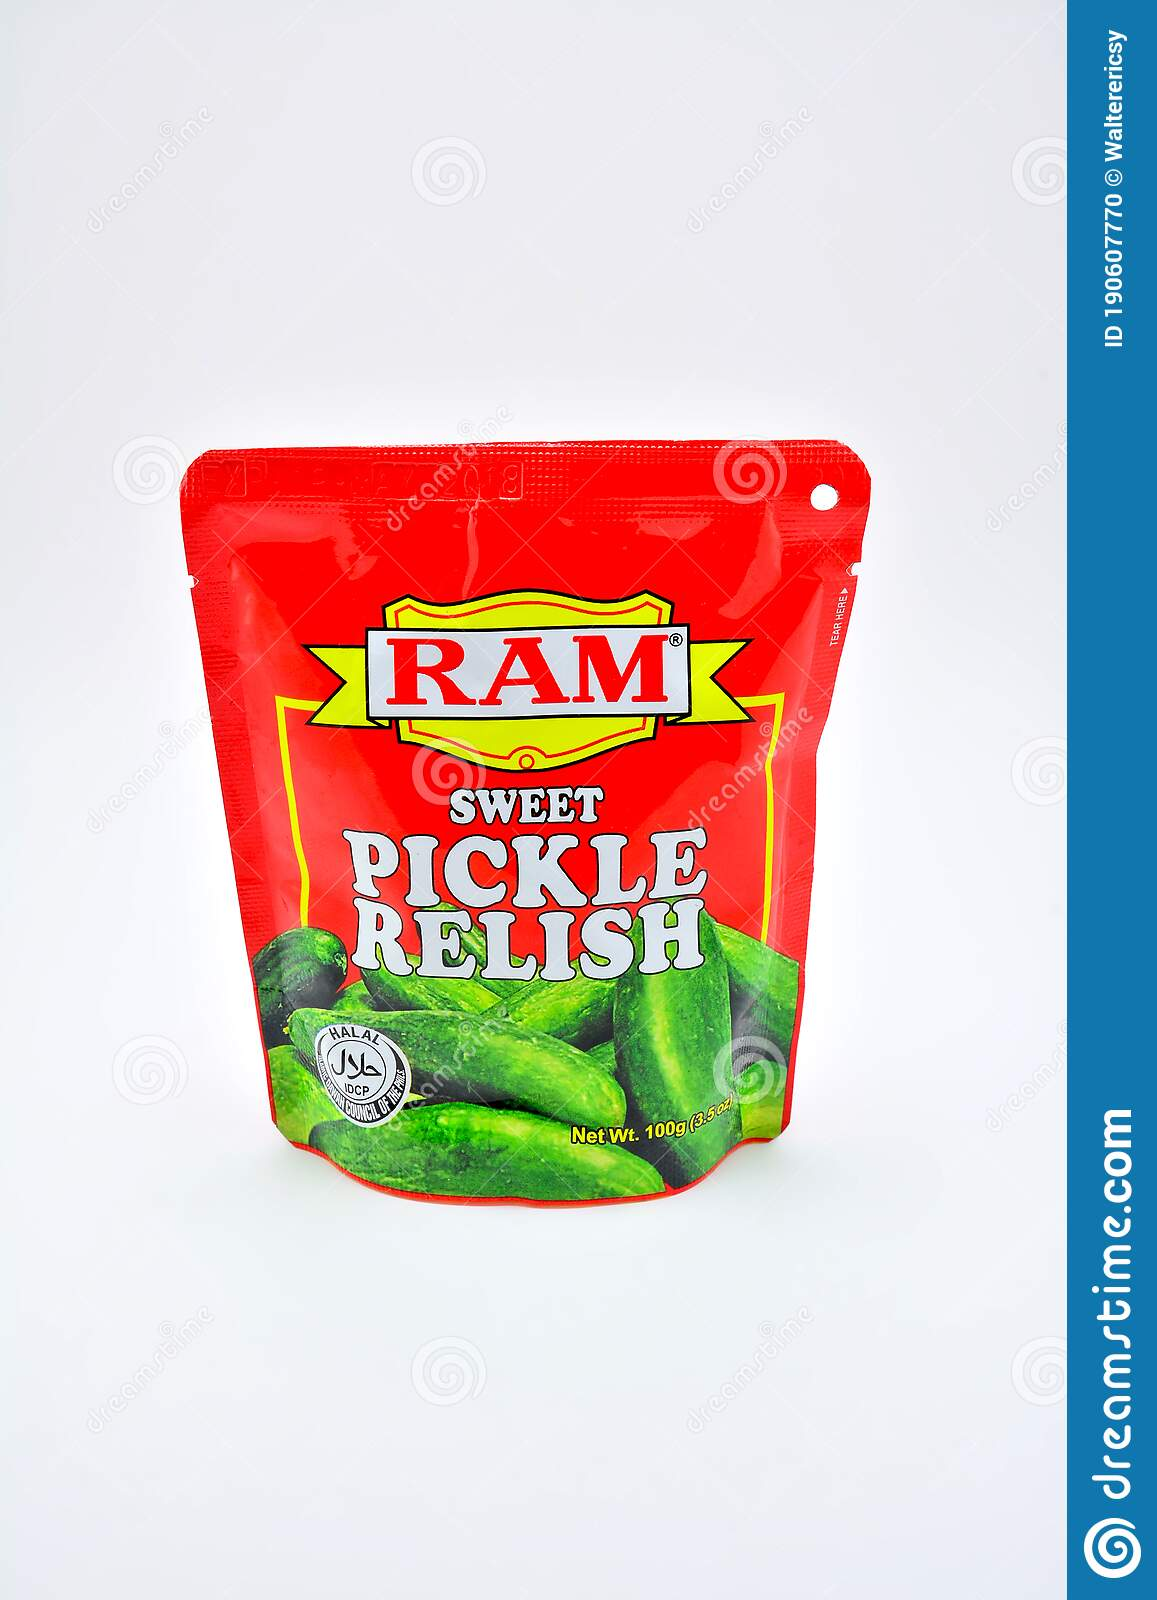 Ram Sweet Pickle Relish In The Philippines Editorial Image Image Of Sour Pickle 190607770